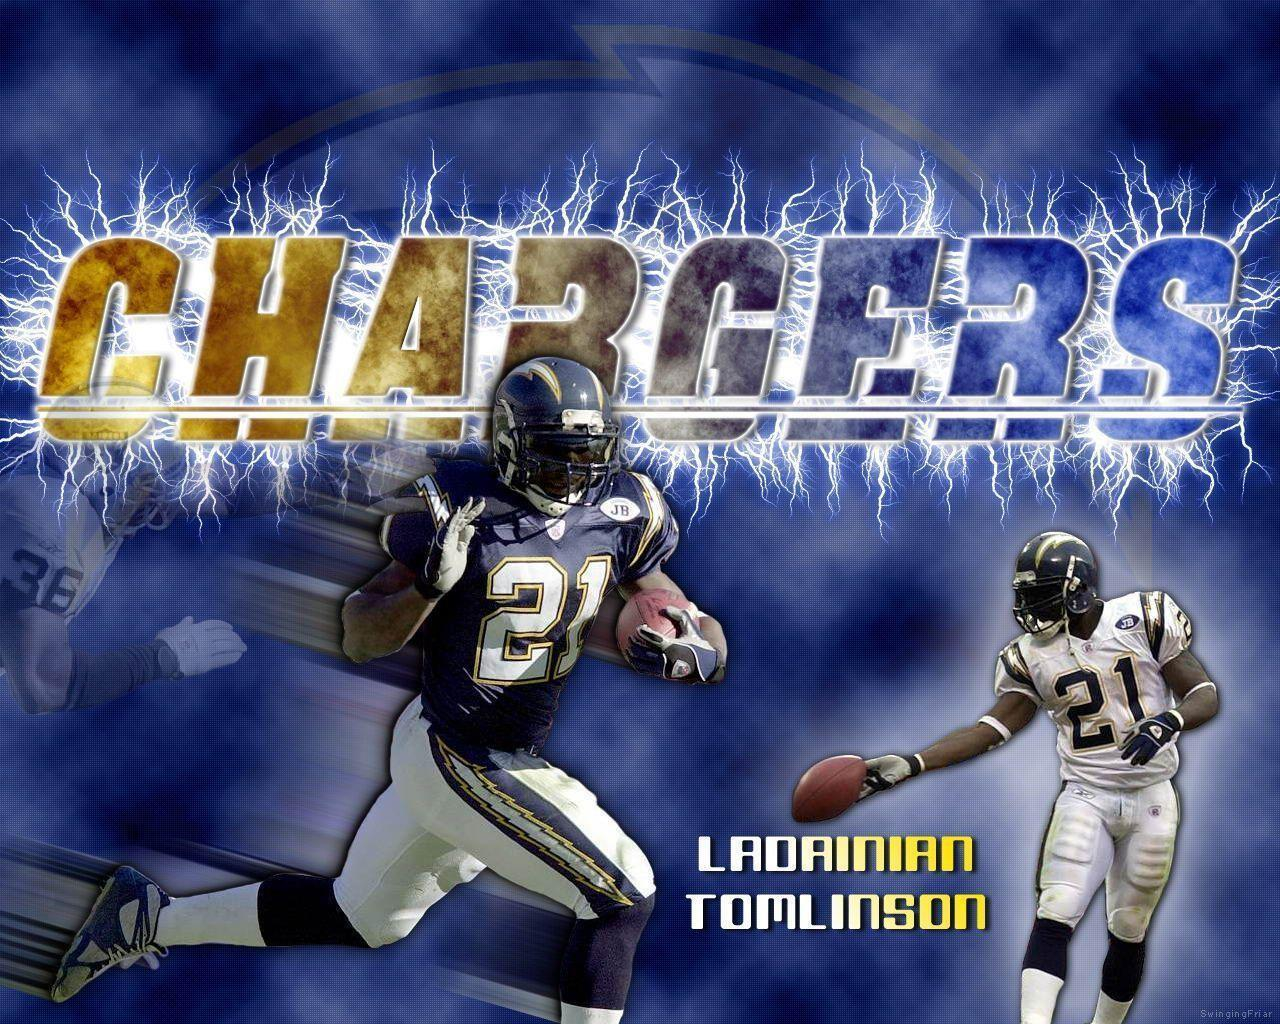 San Diego Chargers Wallpapers - Wallpaper Cave Qualcomm Stadium Chargers Wallpaper